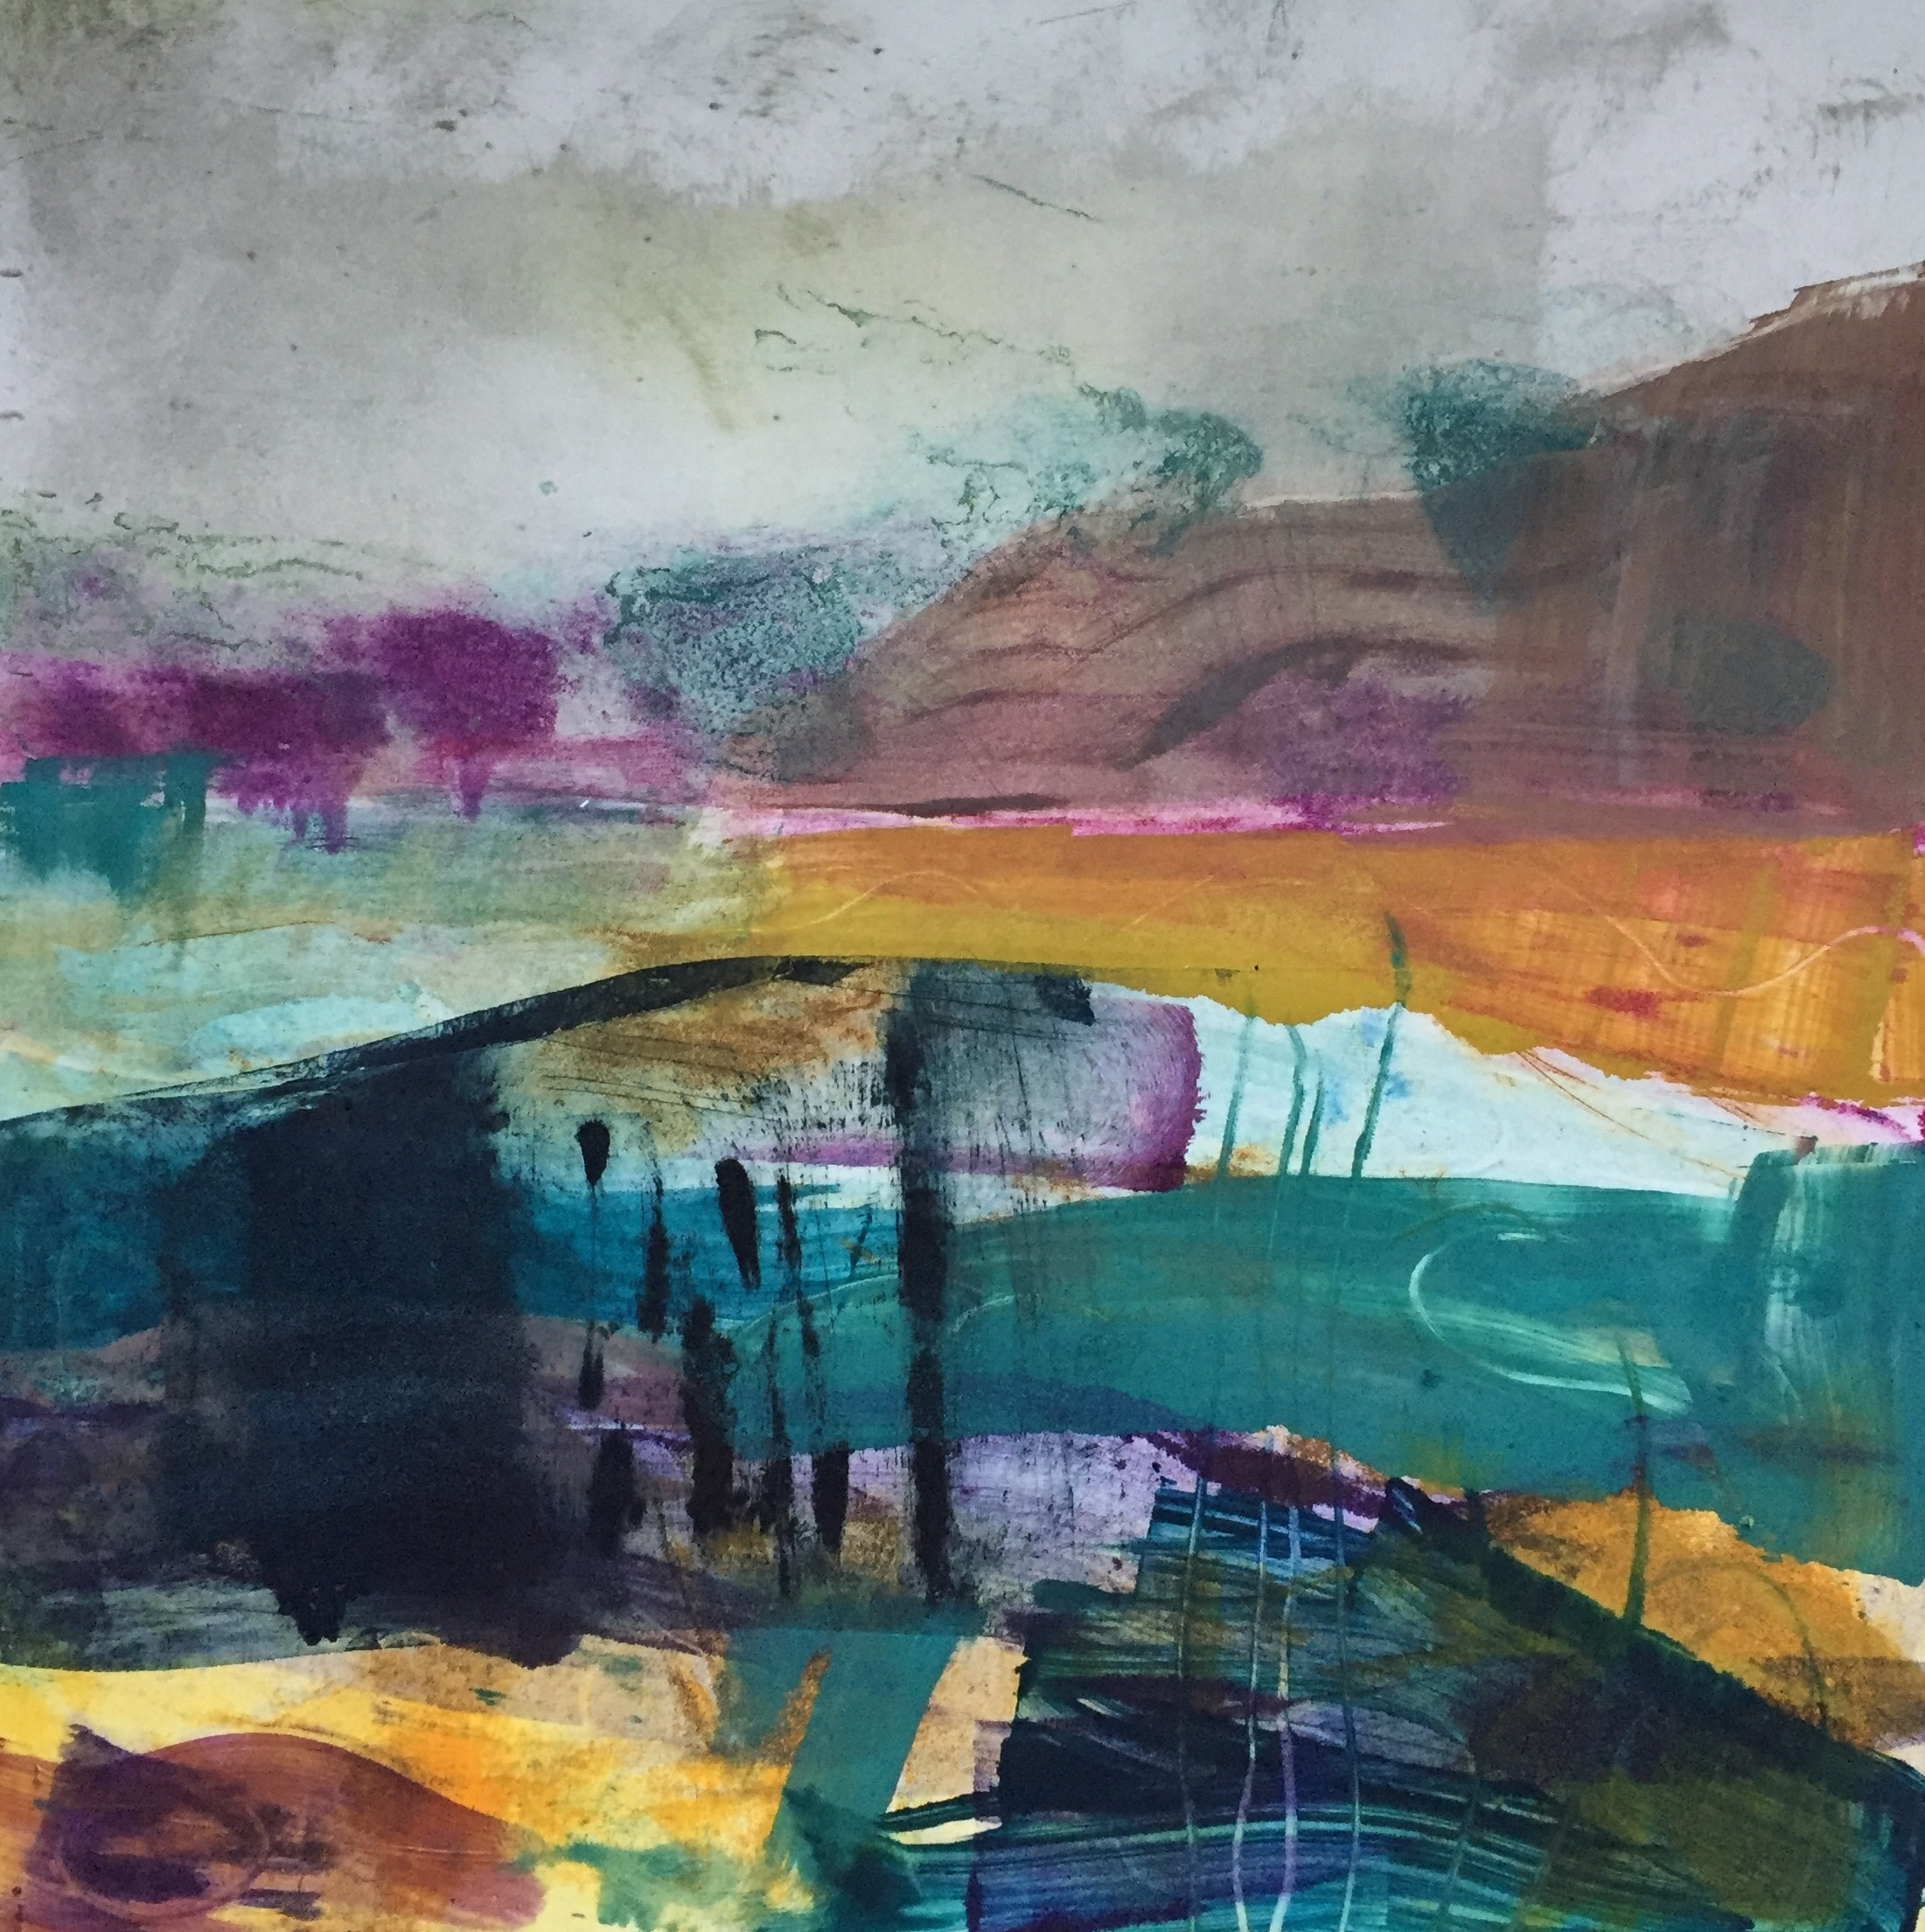 "<span class=""link fancybox-details-link""><a href=""/exhibitions/17/works/image_standalone666/"">View Detail Page</a></span><p><strong>Louise Davies</strong></p><p>Approaching Storm</p><p>monoprint</p><p>70 x 70cm</p><p>£950 framed</p>"